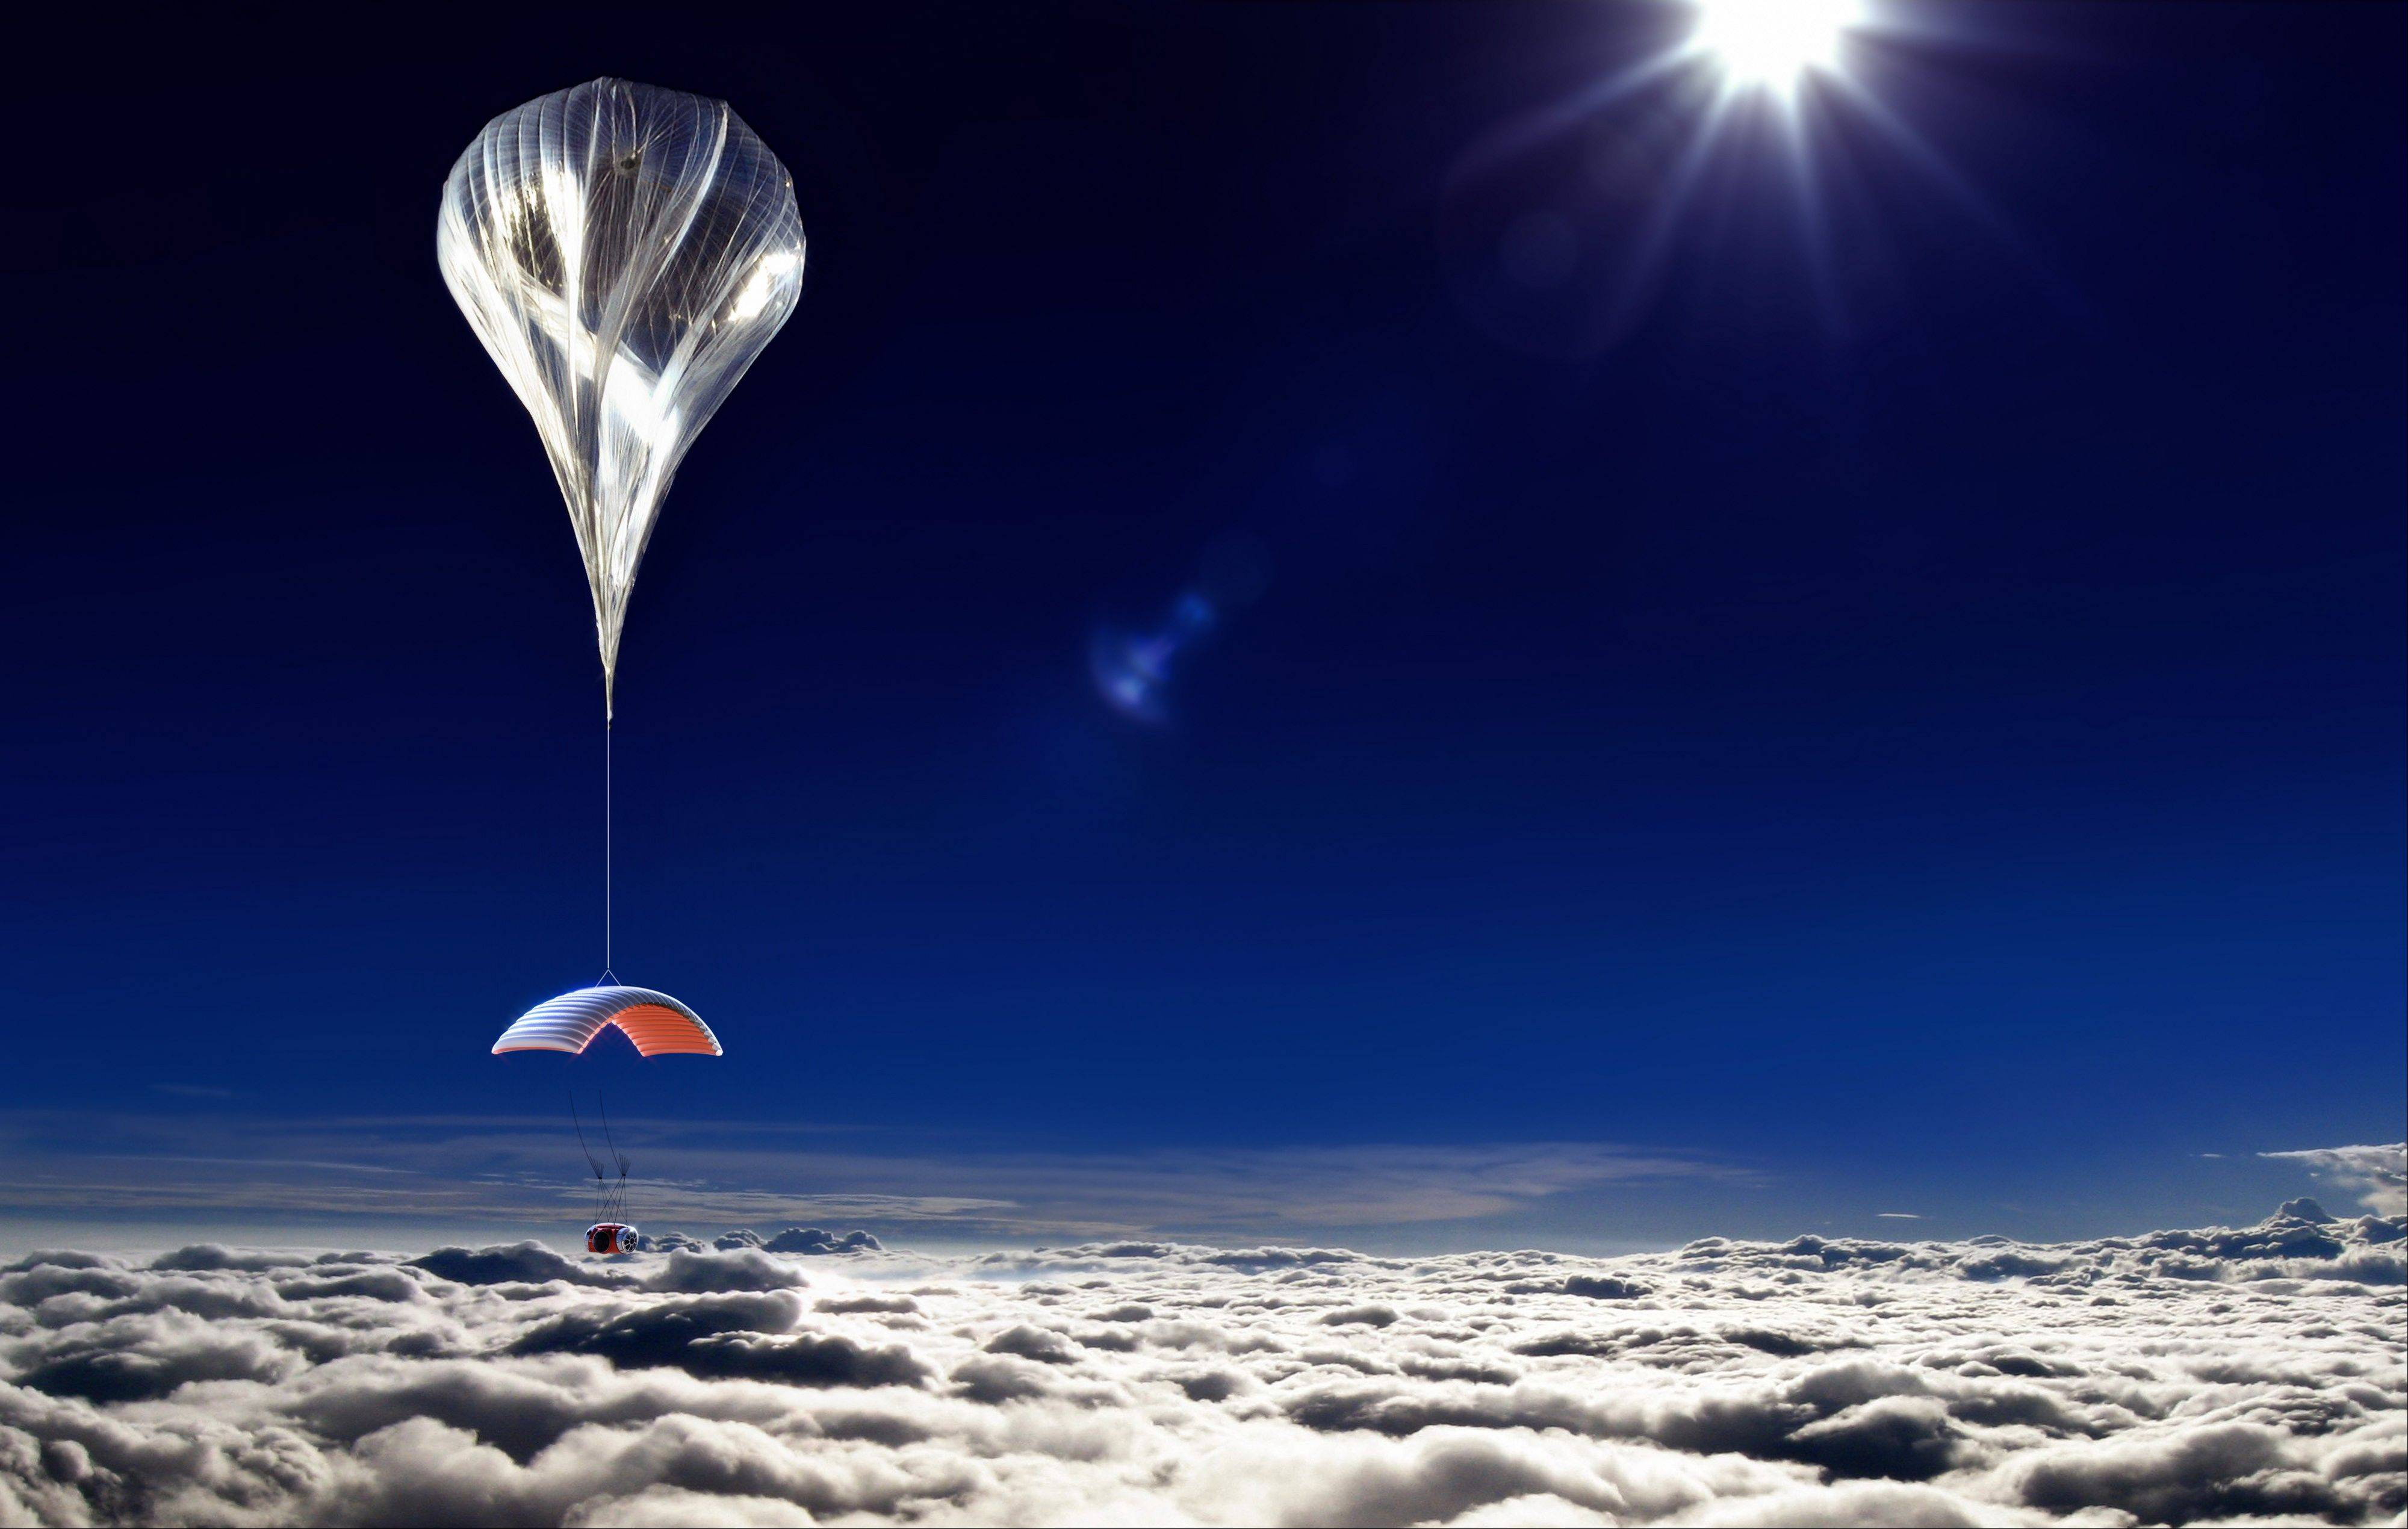 This artist's rendering shows a capsule lifted by a high-altitude balloon up 19 miles into the air for tourists. Company CEO Jane Poynter said people would pay $75,000 to spend a couple of hours looking down at the curve of the Earth.